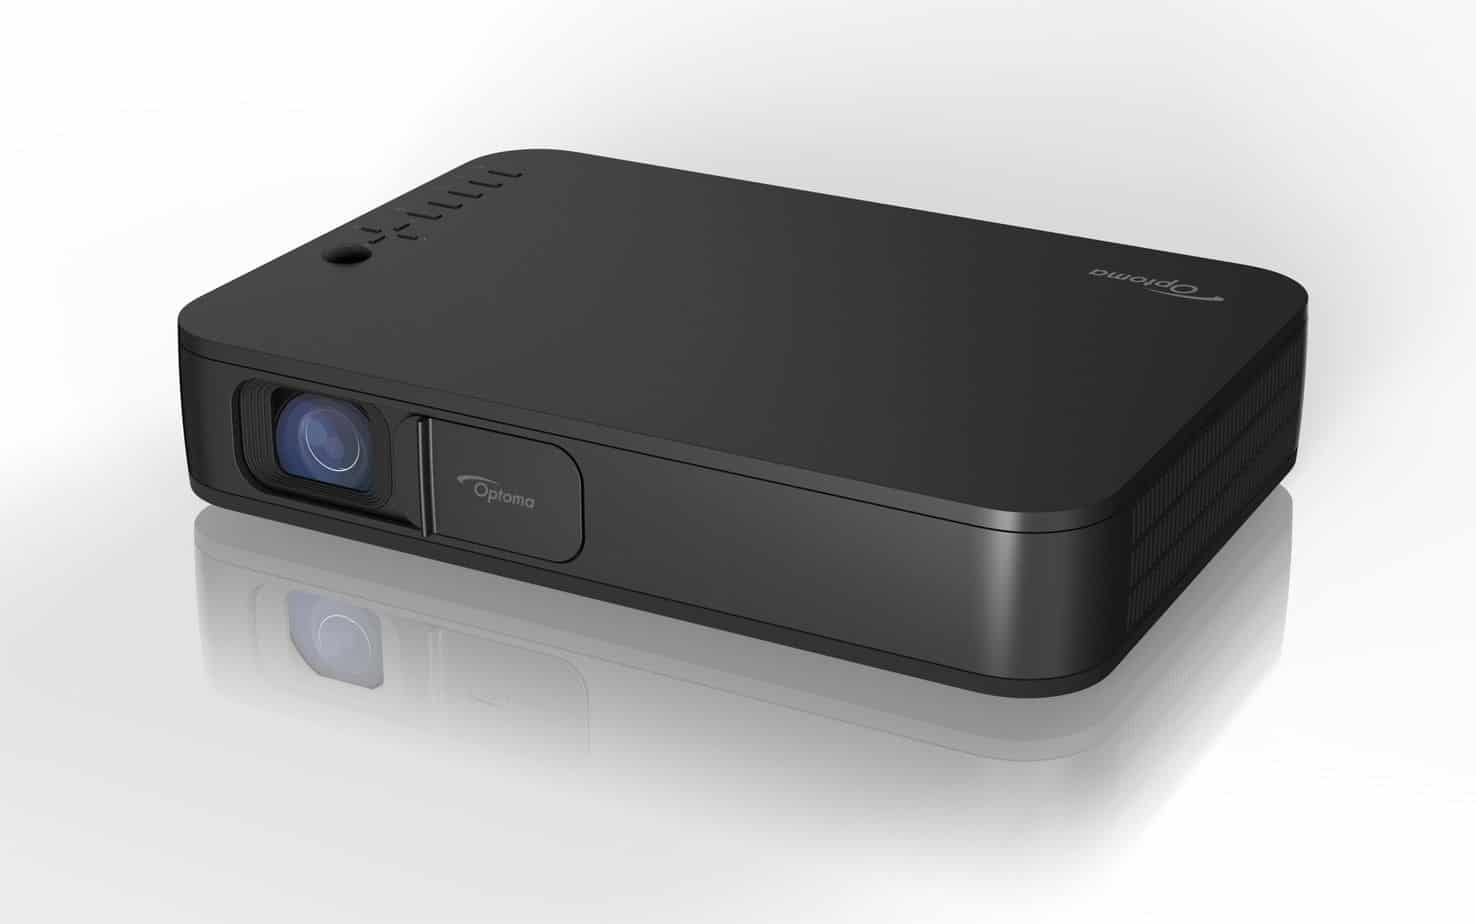 Optoma-LH150-projector